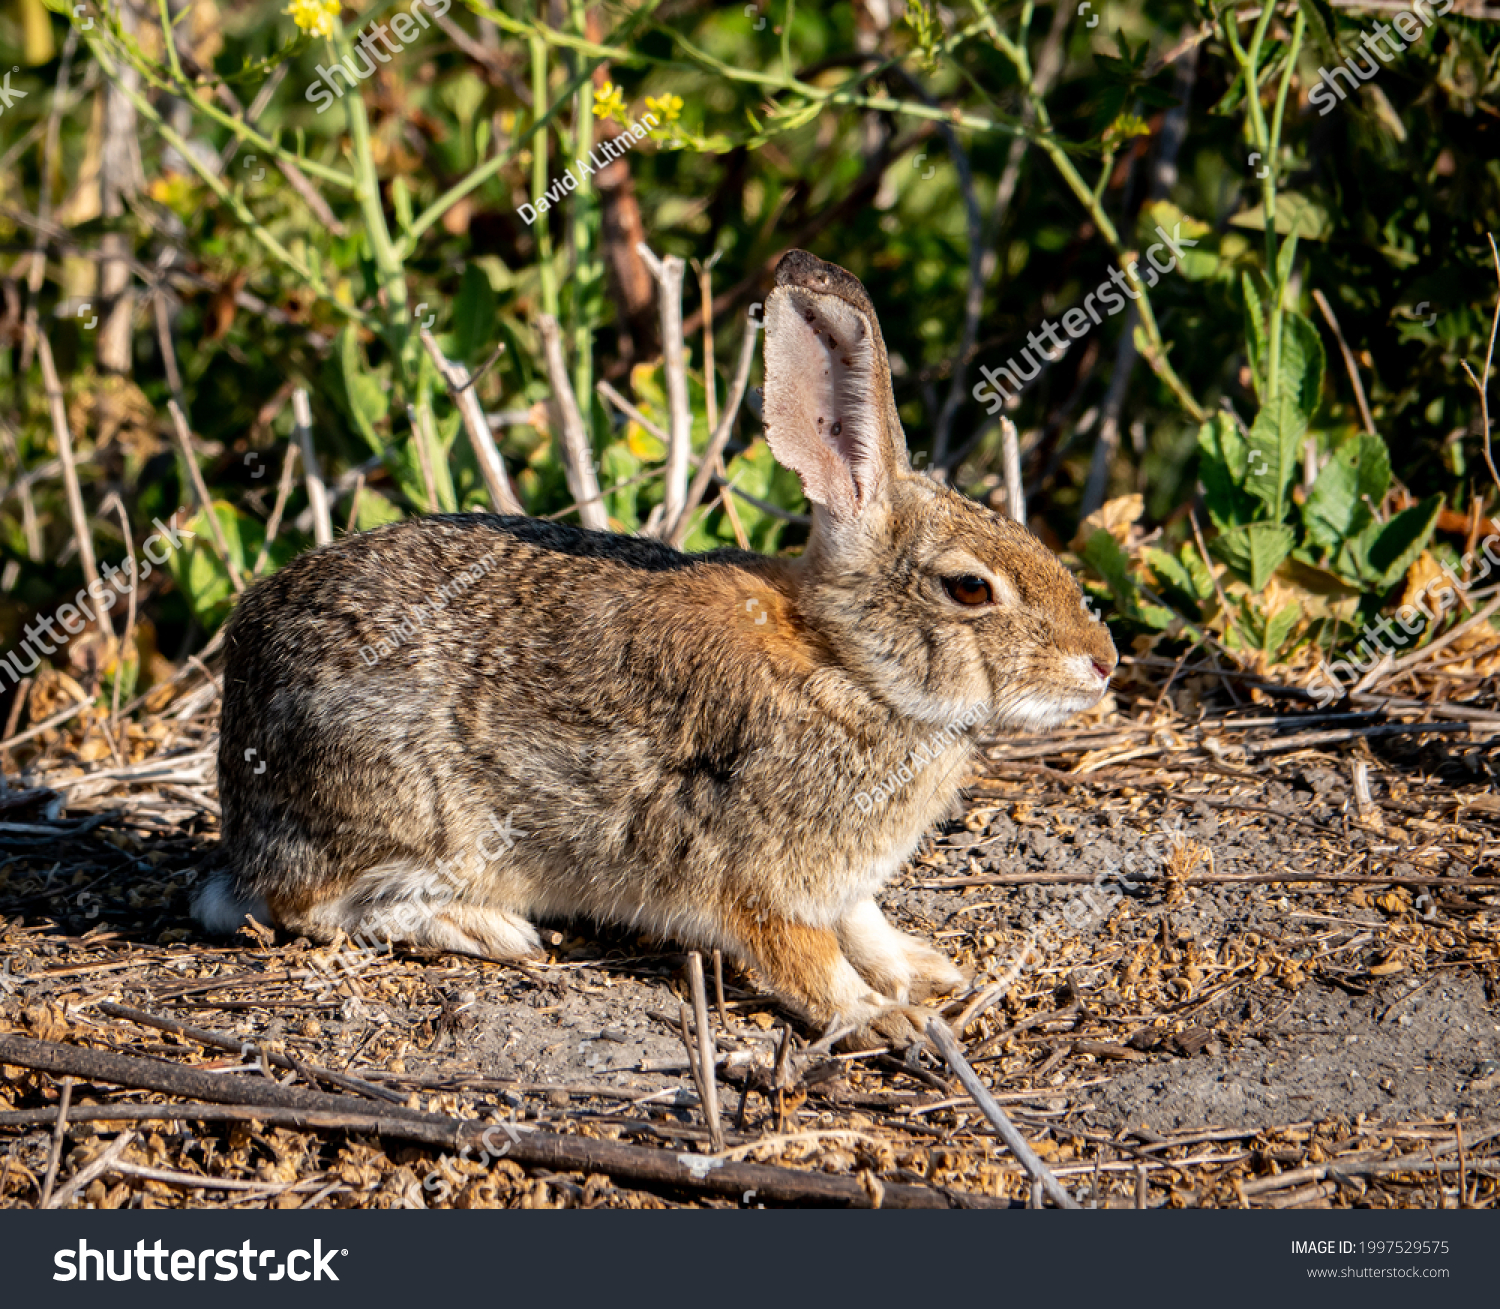 A wild Western Brush Rabbit (Sylvilagus bachmani) forages in the hills of Monterey, California.